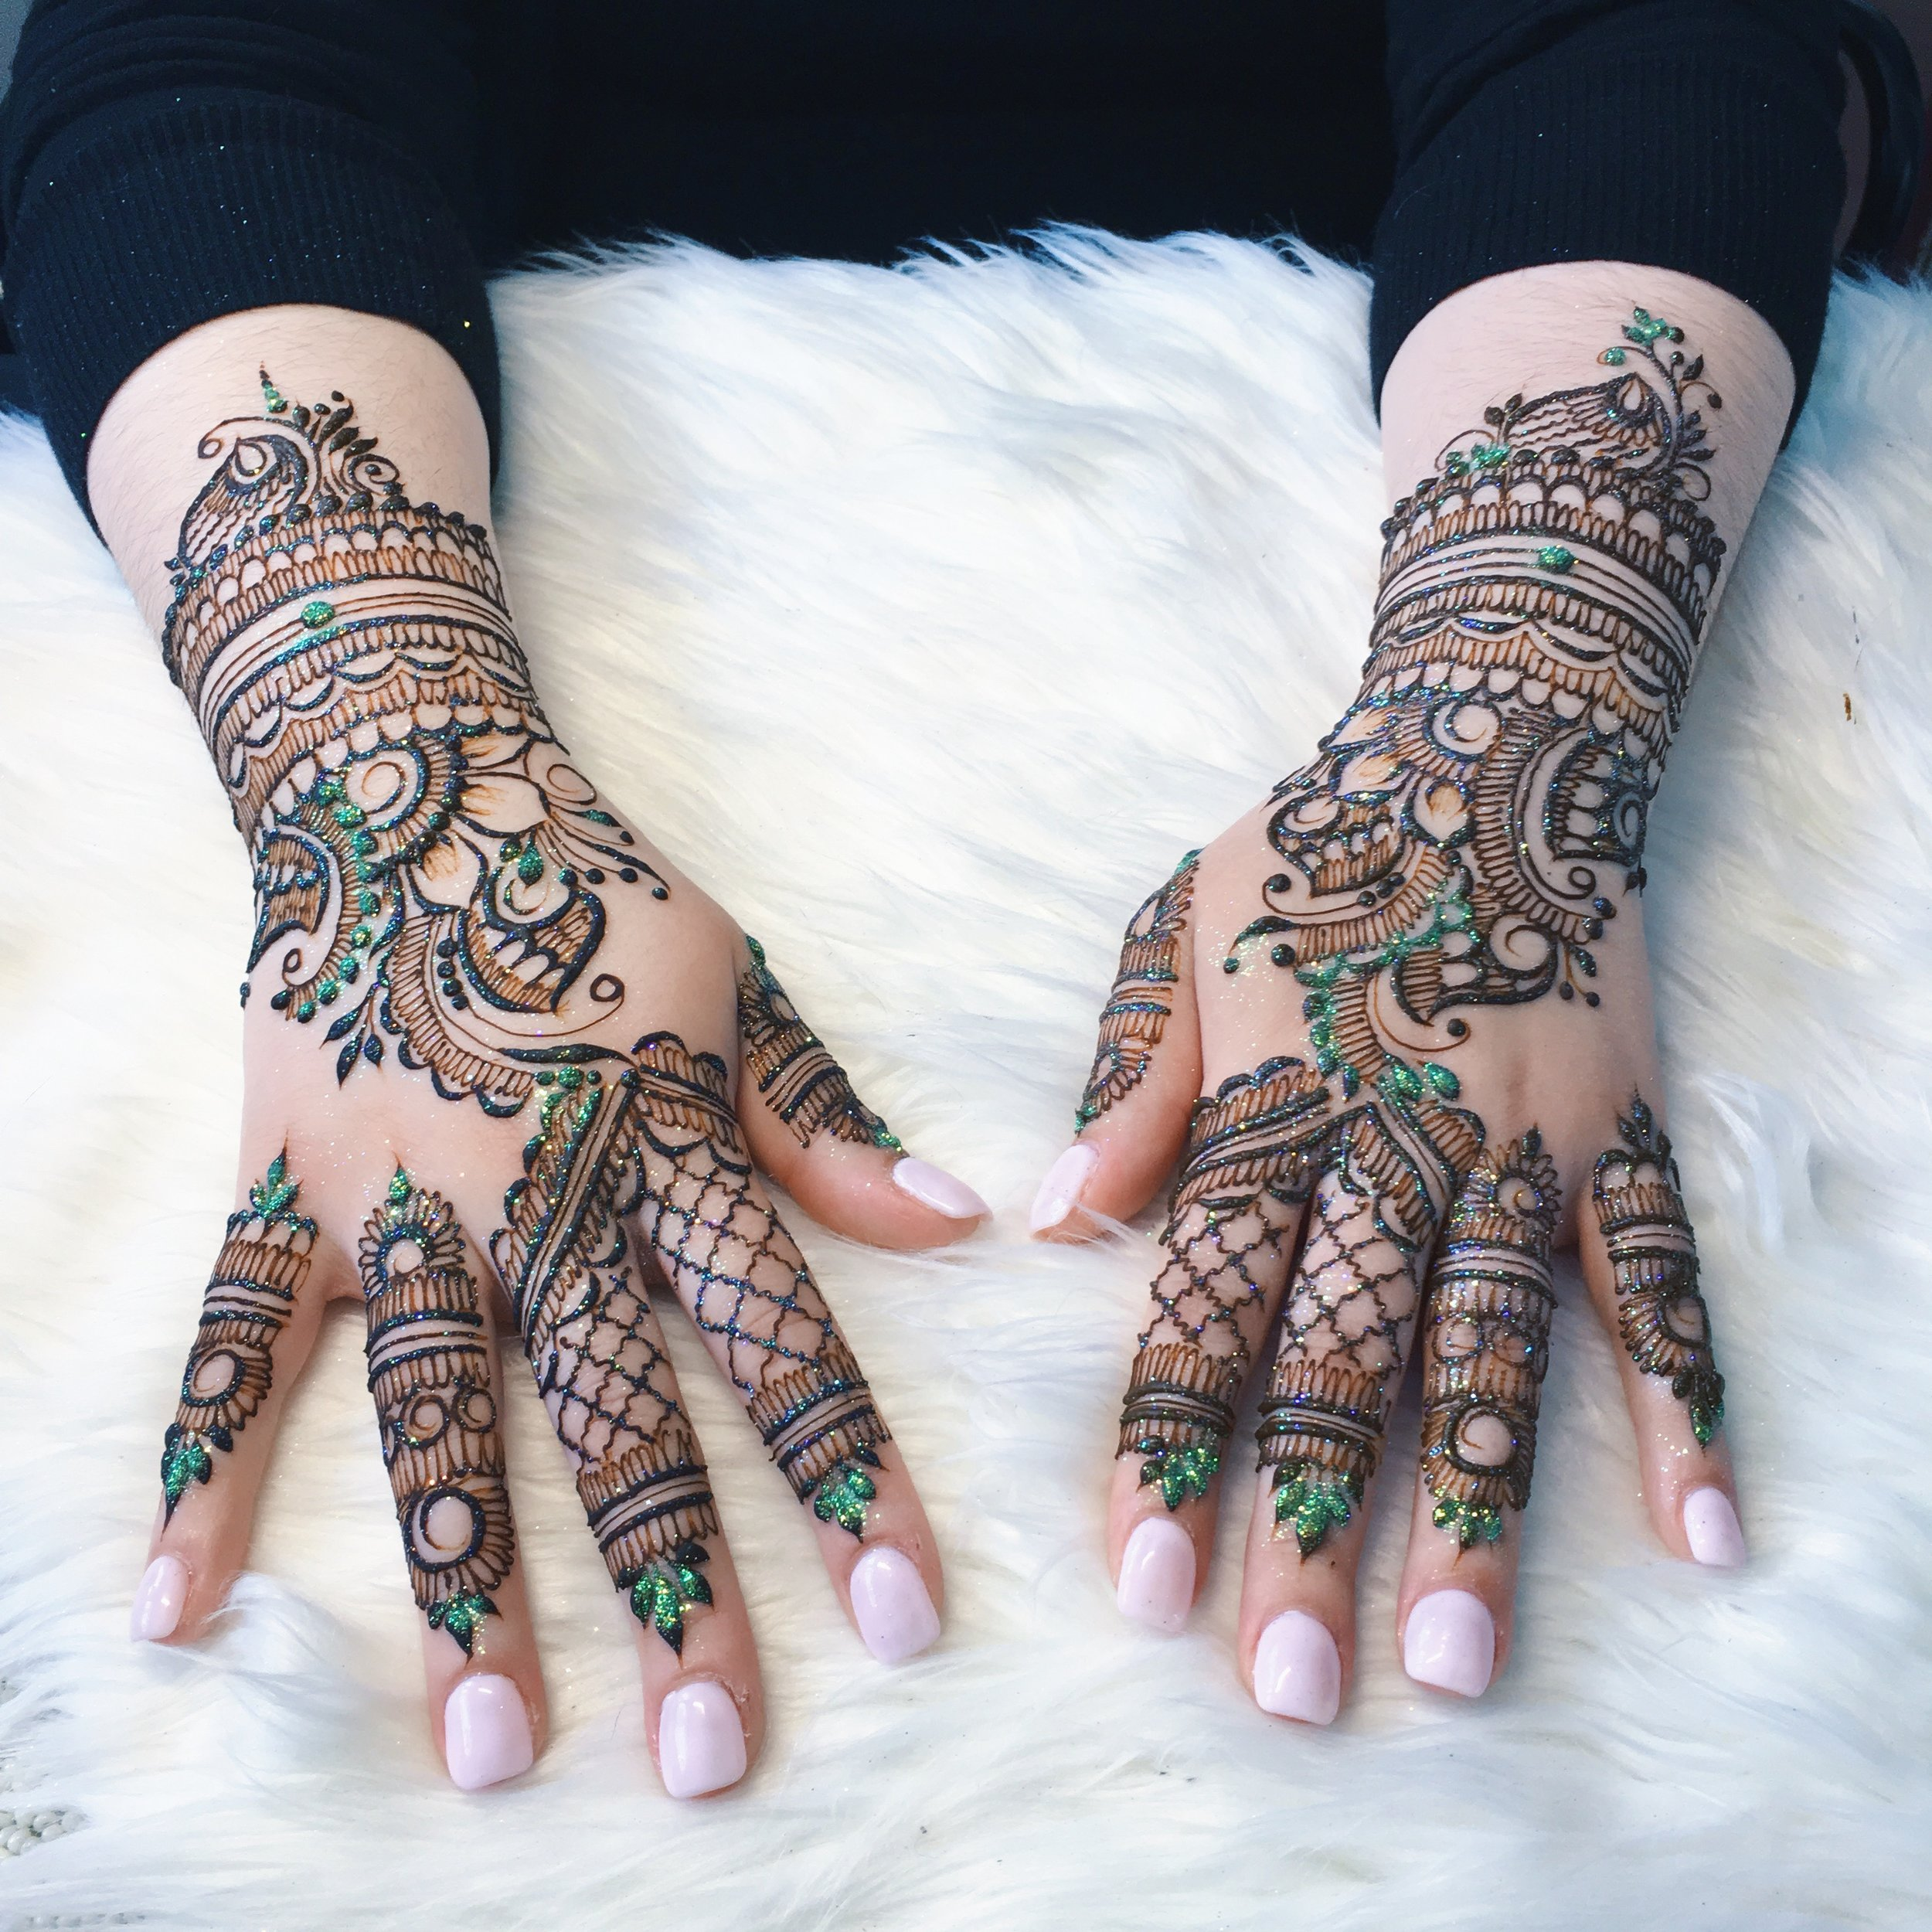 - Unwind with personalized henna designs. Reserved by appointment only, these sessions will elevate your mood and leave you with gorgeous, one-of-a-kind wearable art.